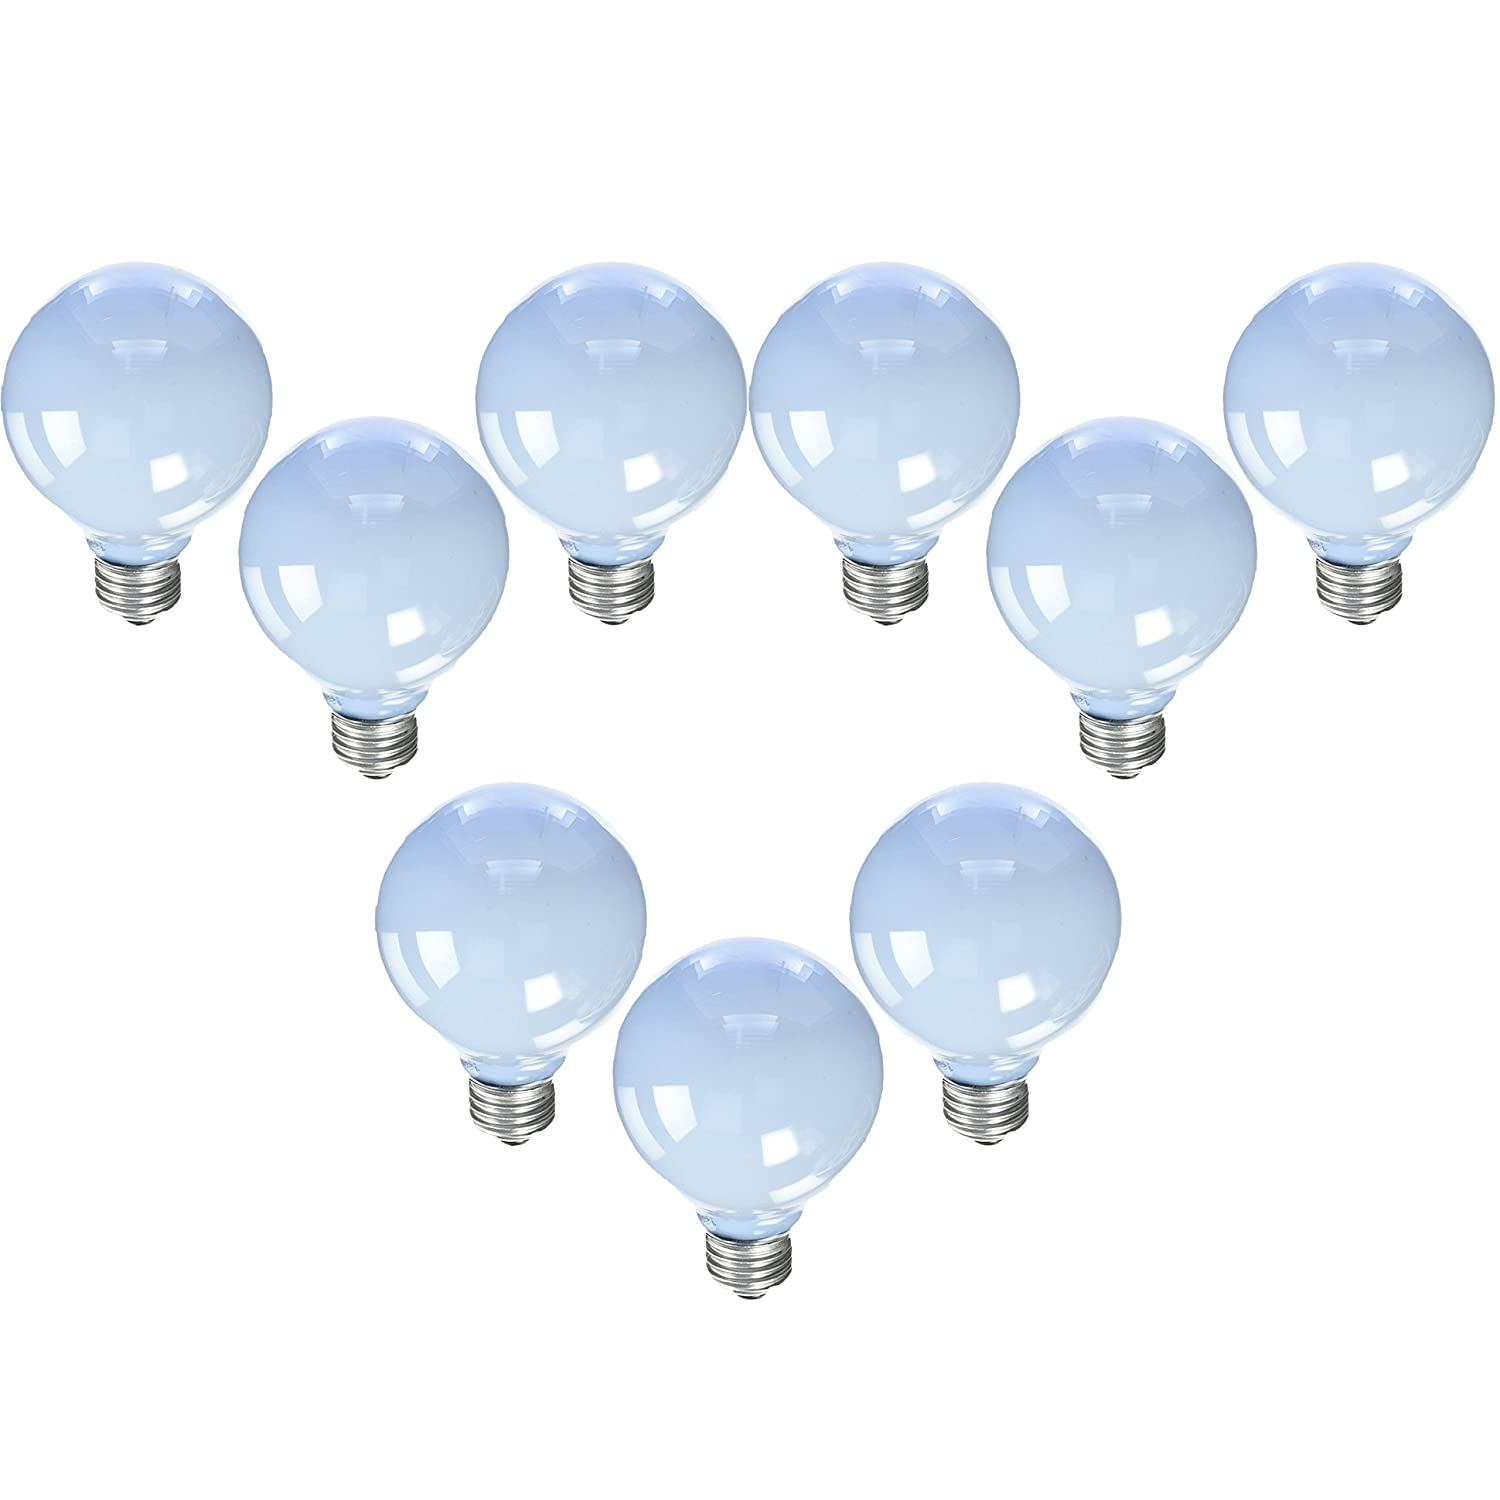 GE Reveal Frosted 40-Watt 250 Lumens; 1.4 Year Life G25 Decorative Globe Light Bulbs (9 Bulbs)